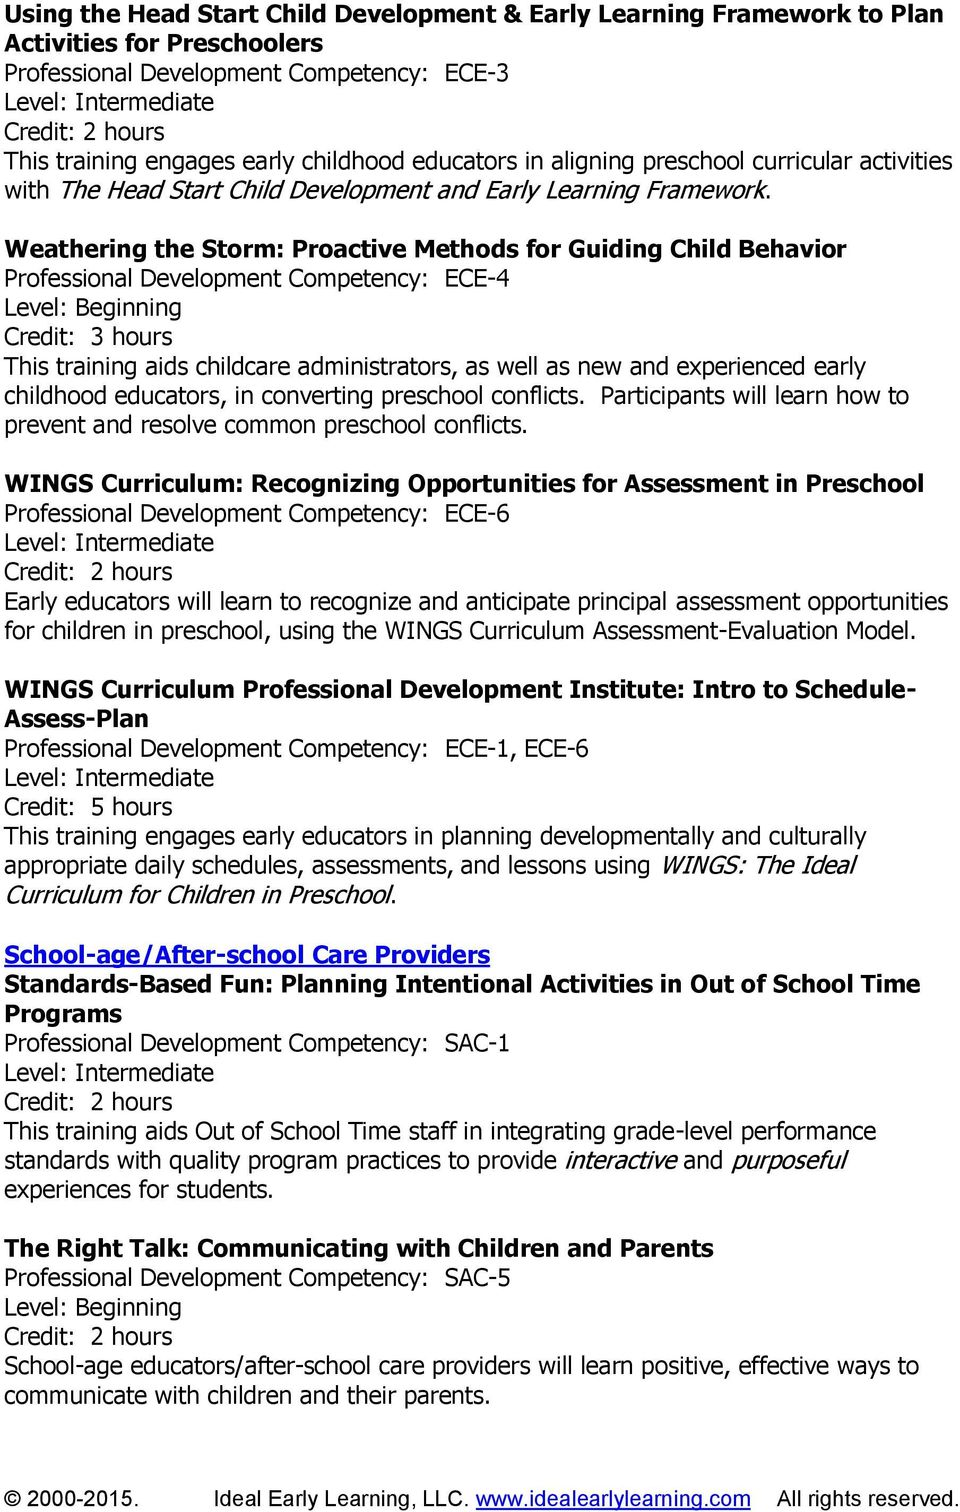 Weathering the Storm: Proactive Methods for Guiding Child Behavior Professional Development Competency: ECE-4 This training aids childcare administrators, as well as new and experienced early